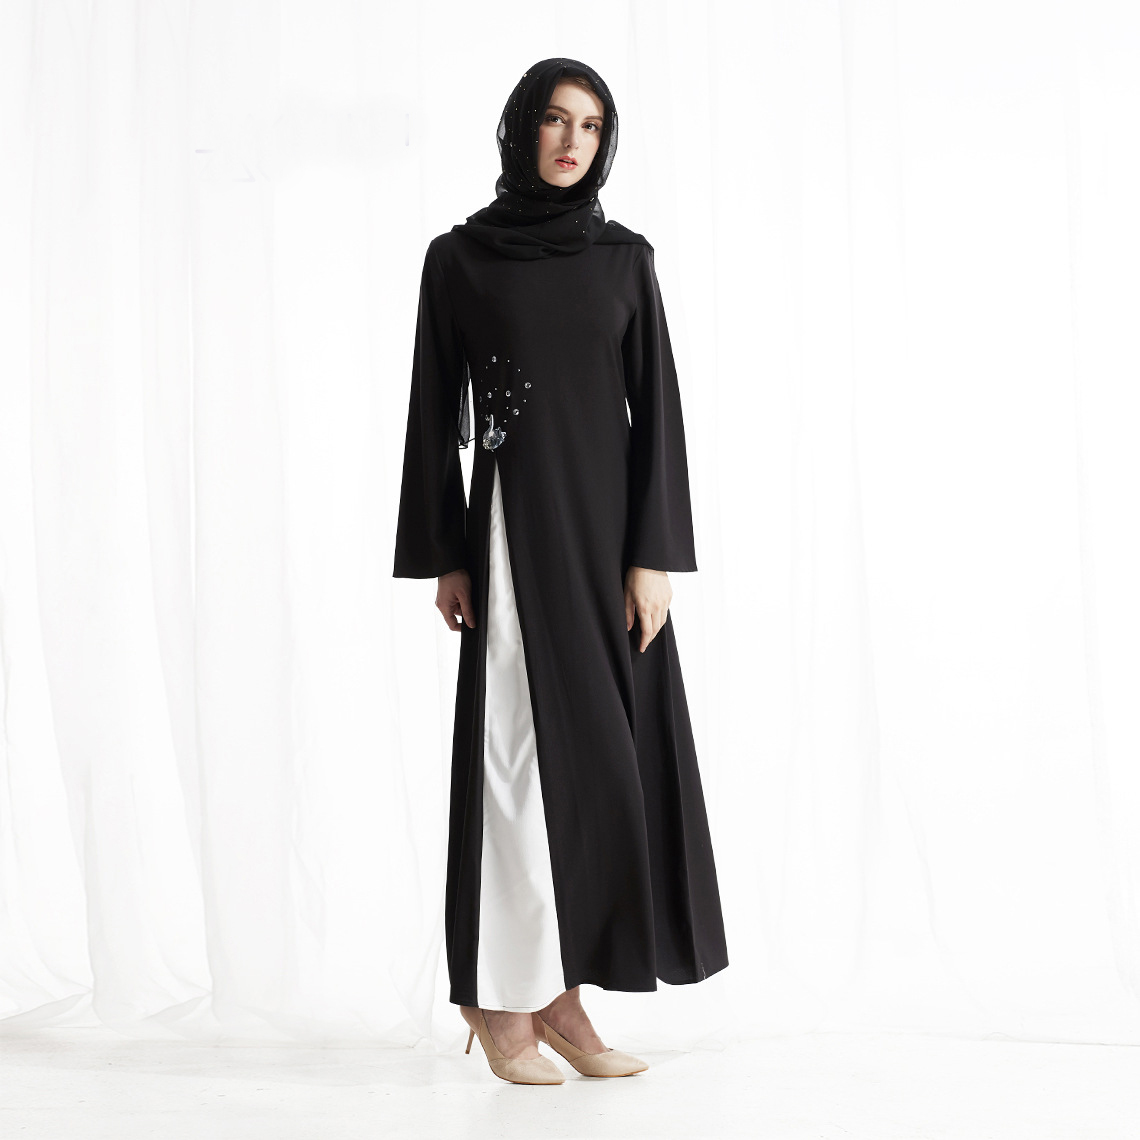 Black Elegant Muslim Dress Swan Diamond Islam Arab Women Dress Loose Ladies Dresses